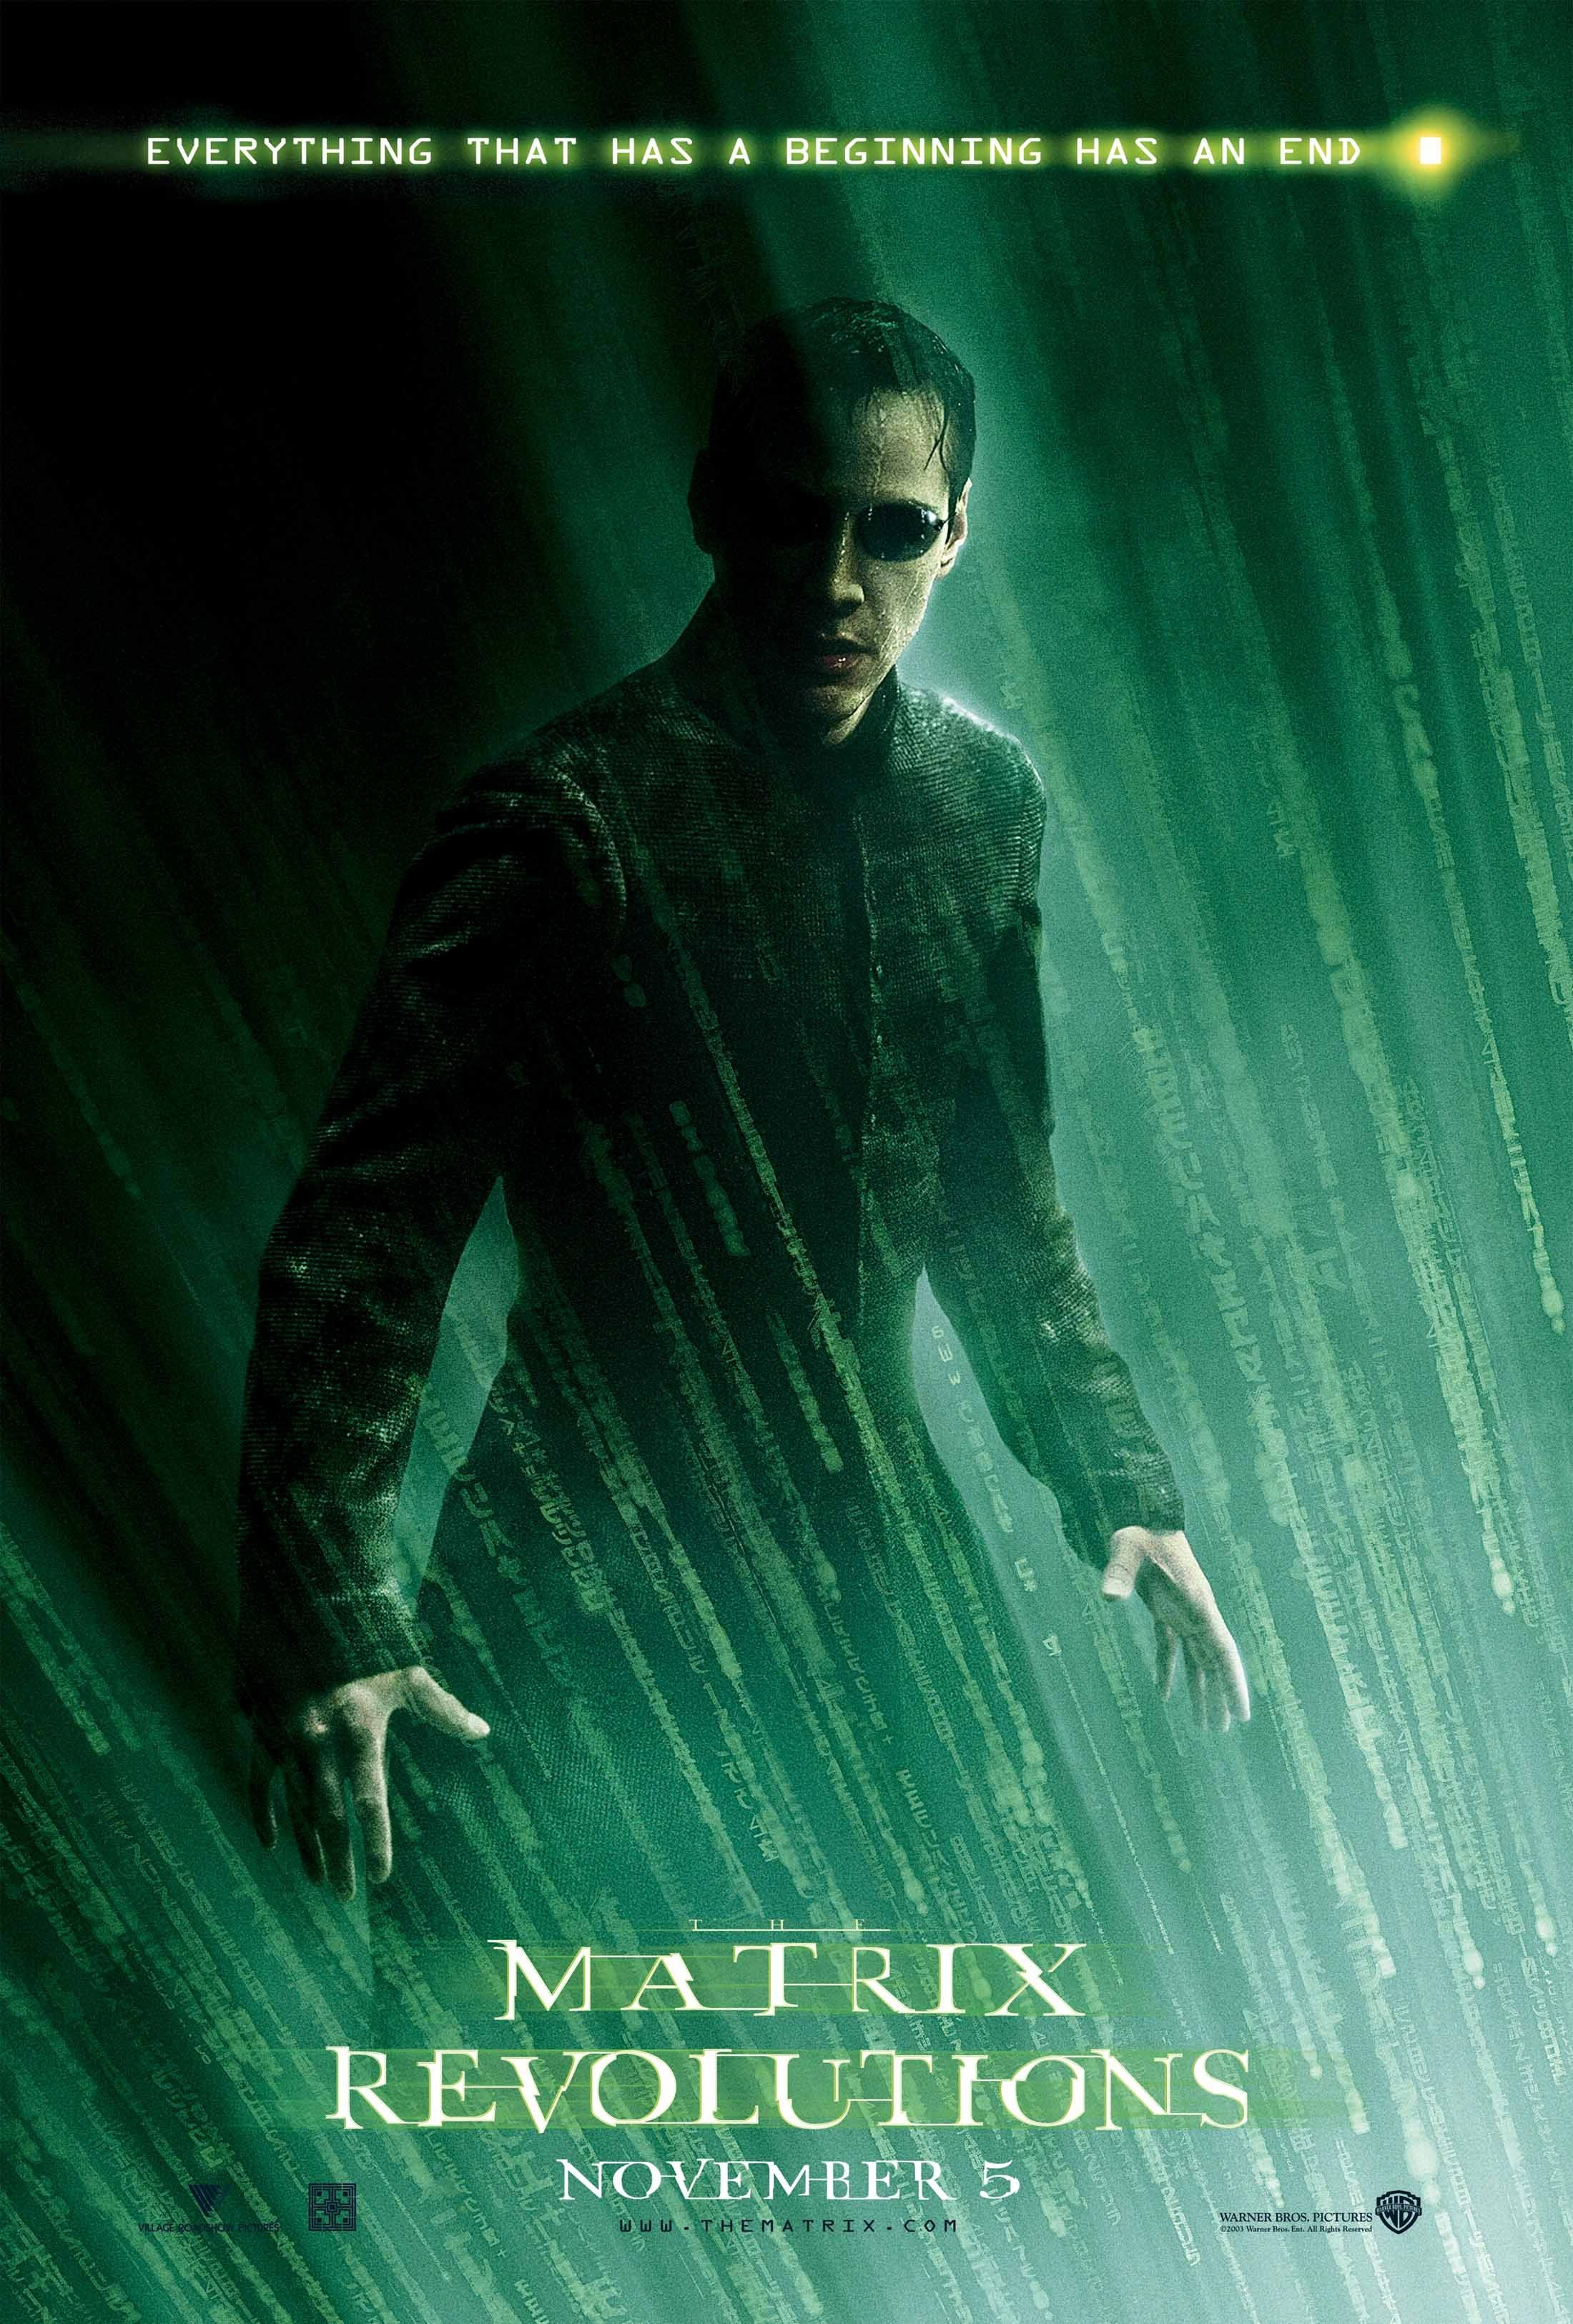 The Matrix Revolutions (2003) - Directed by: The WachowskisStarring: Keanu Reeves, Laurence Fishburne, Carrie Anne-Moss, Jada Pinkett-SmithRated: R for Sci Fi Violence and Brief Sexual ContentRunning Time: 2h 9mTMM Score: 2 StarsSTRENGTHS: Some Okay Action, Looks GoodWEAKNESSES: Lazy Writing, Bland Conclusion